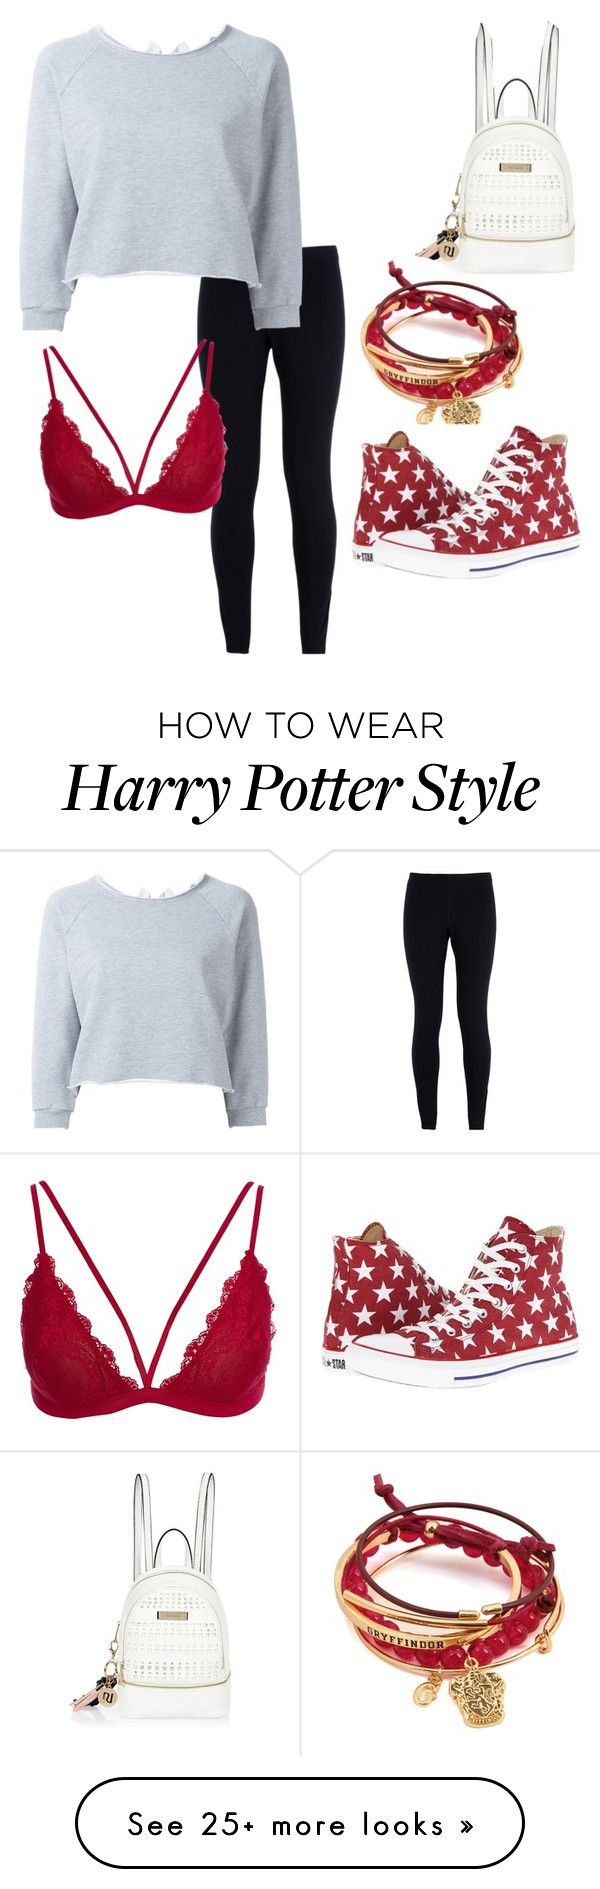 """Untitled #10"" by naja-pown on Polyvore featuring NIKE, Gaëlle Bonheur, Converse, River Island, Leggings and WardrobeStaples"